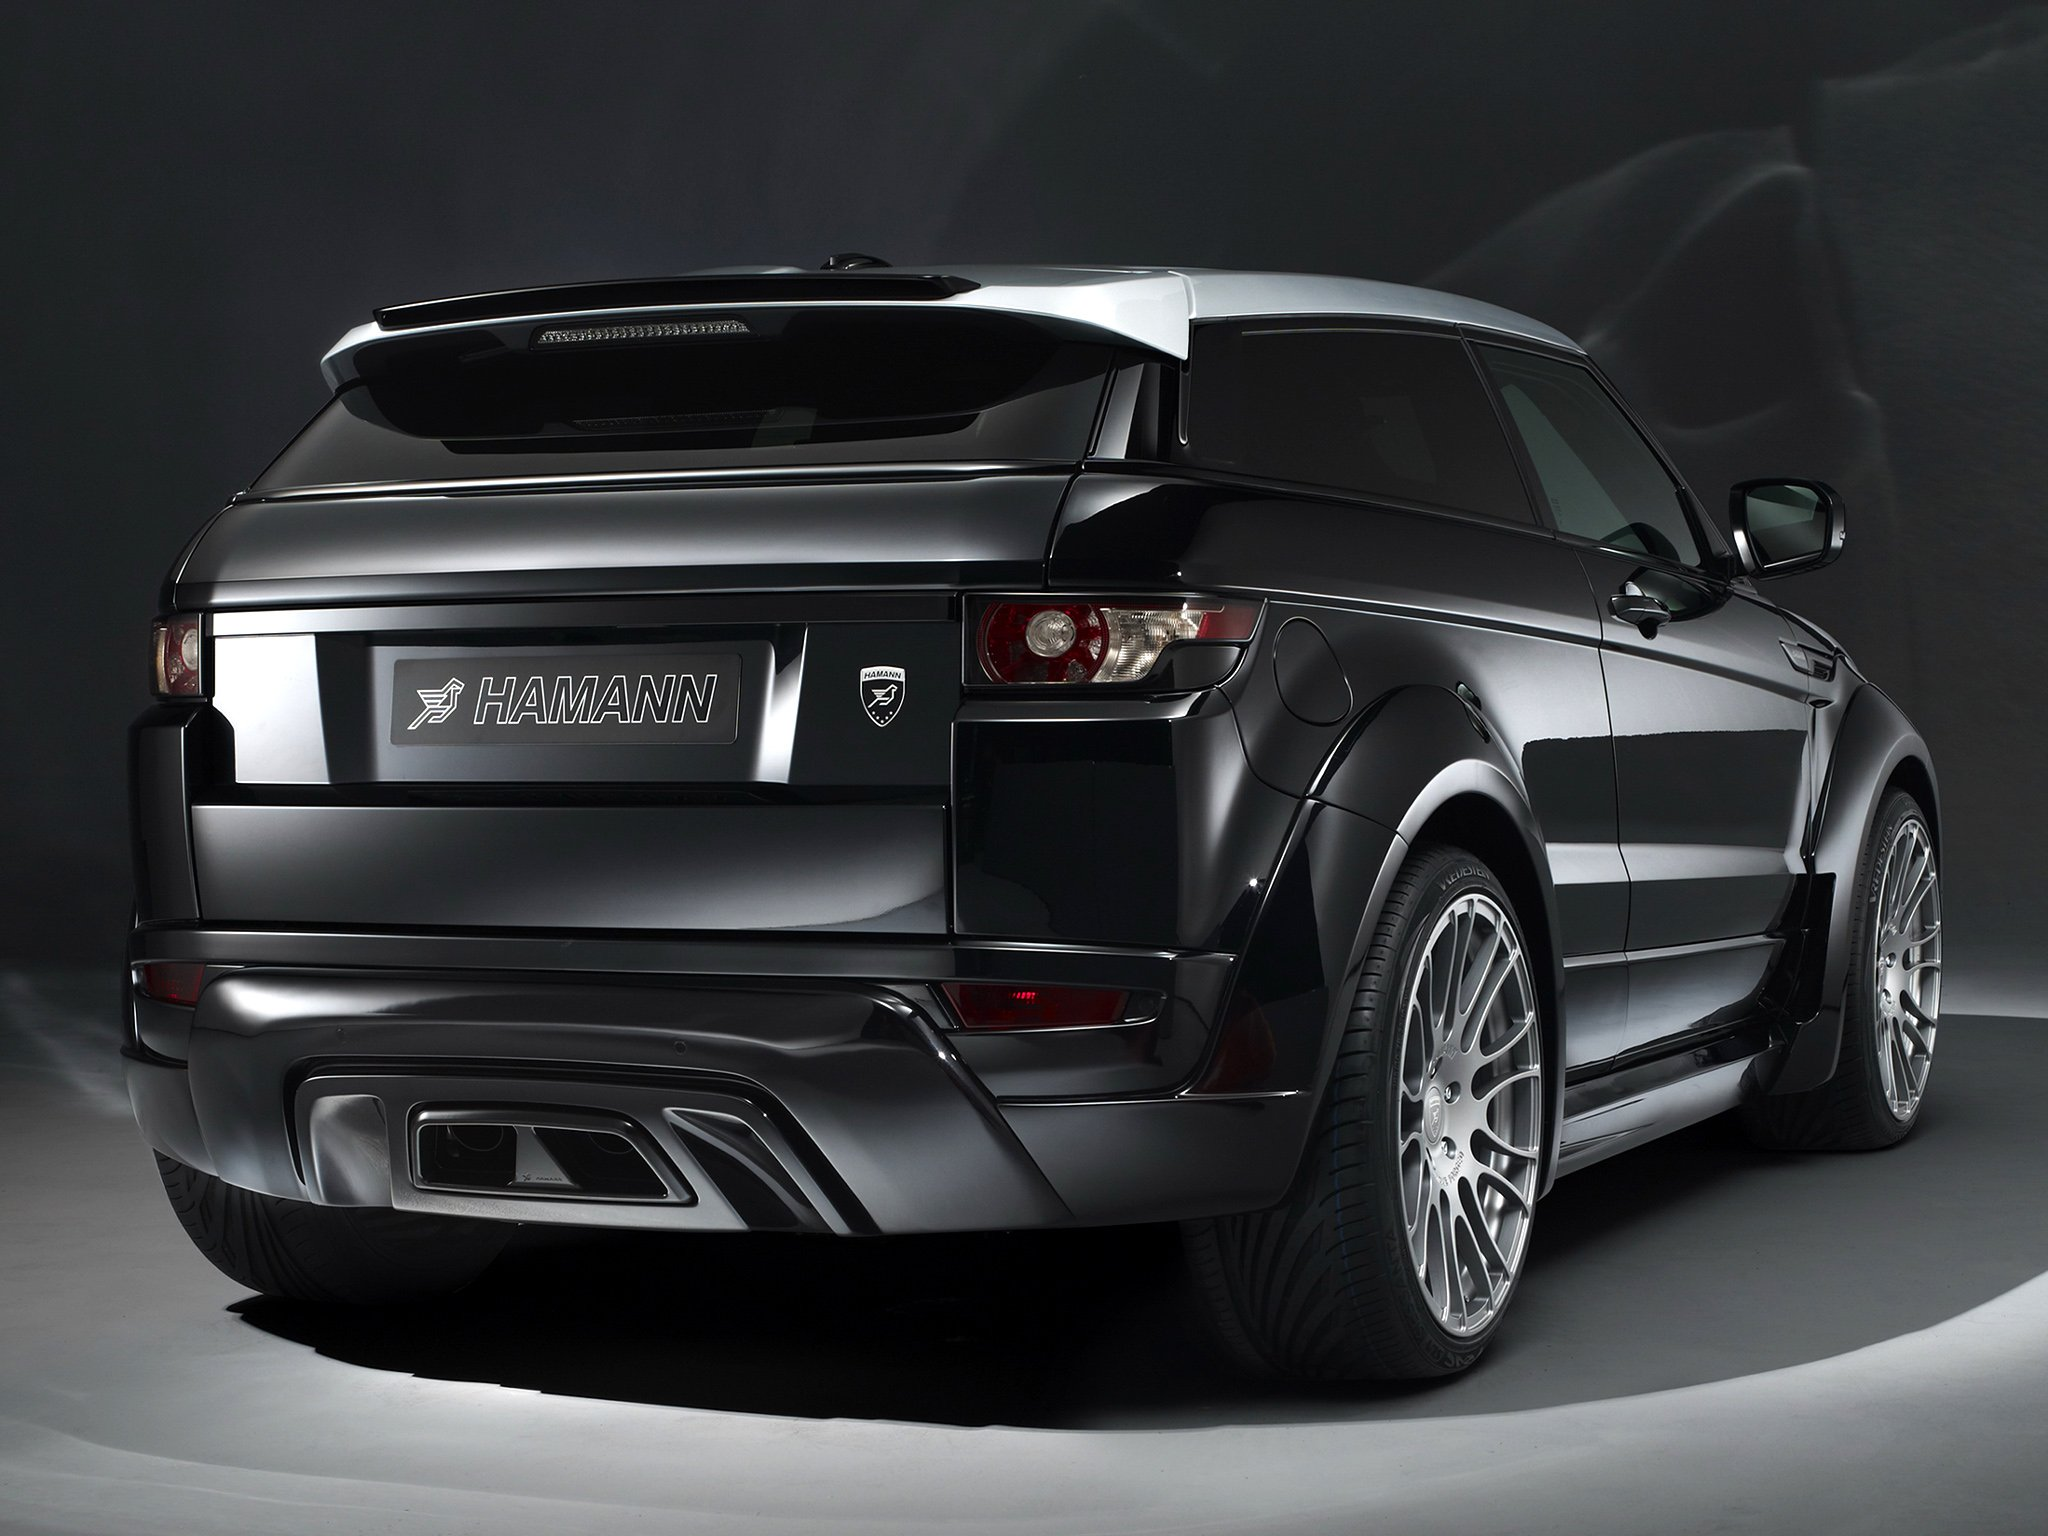 land rover evoque black modified images galleries with a bite. Black Bedroom Furniture Sets. Home Design Ideas